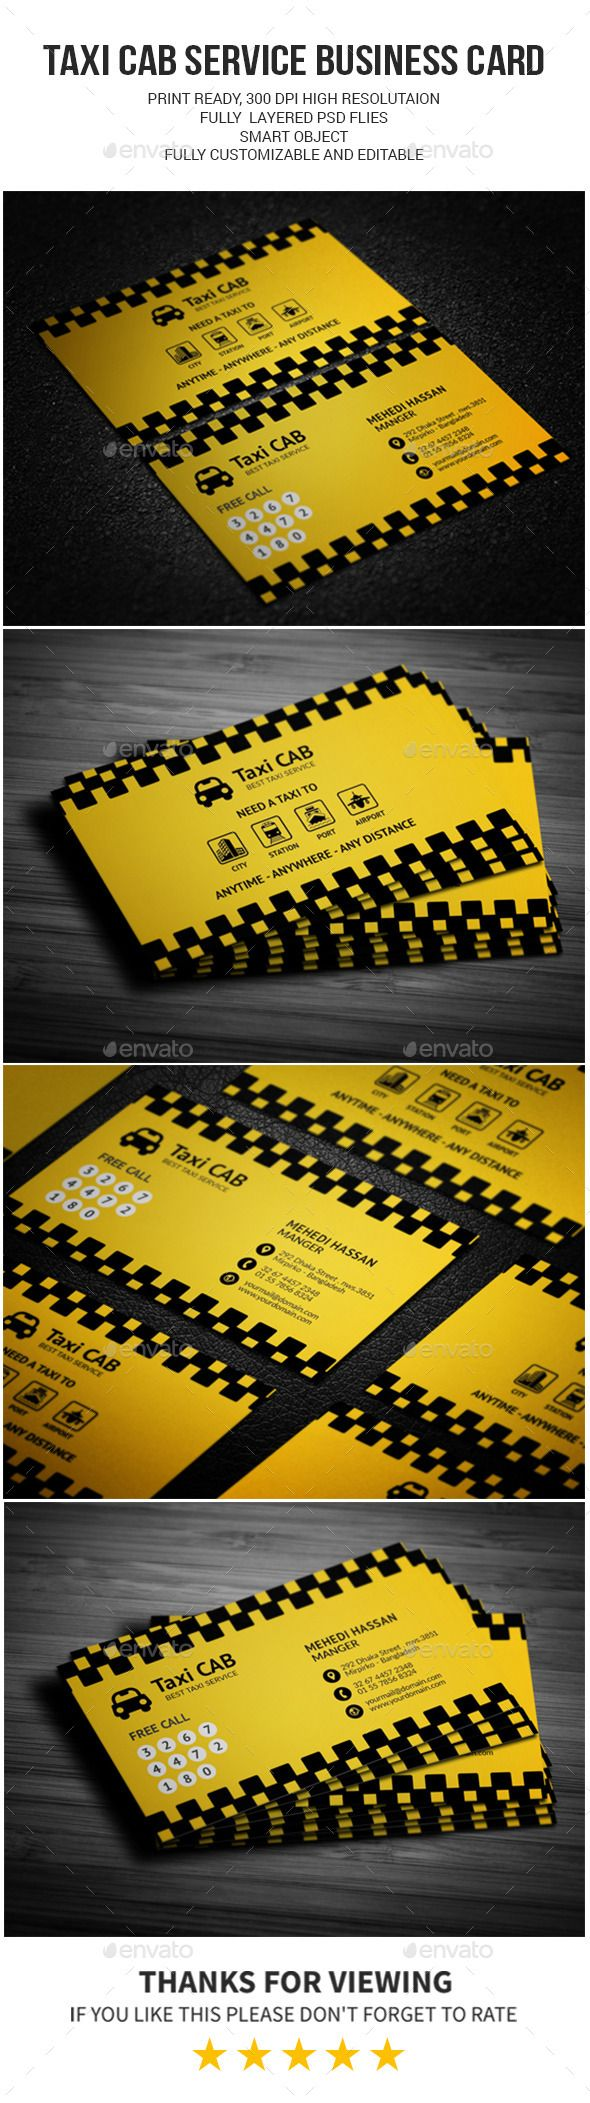 Taxi Cab Service Business Card | Business cards, Photography ...